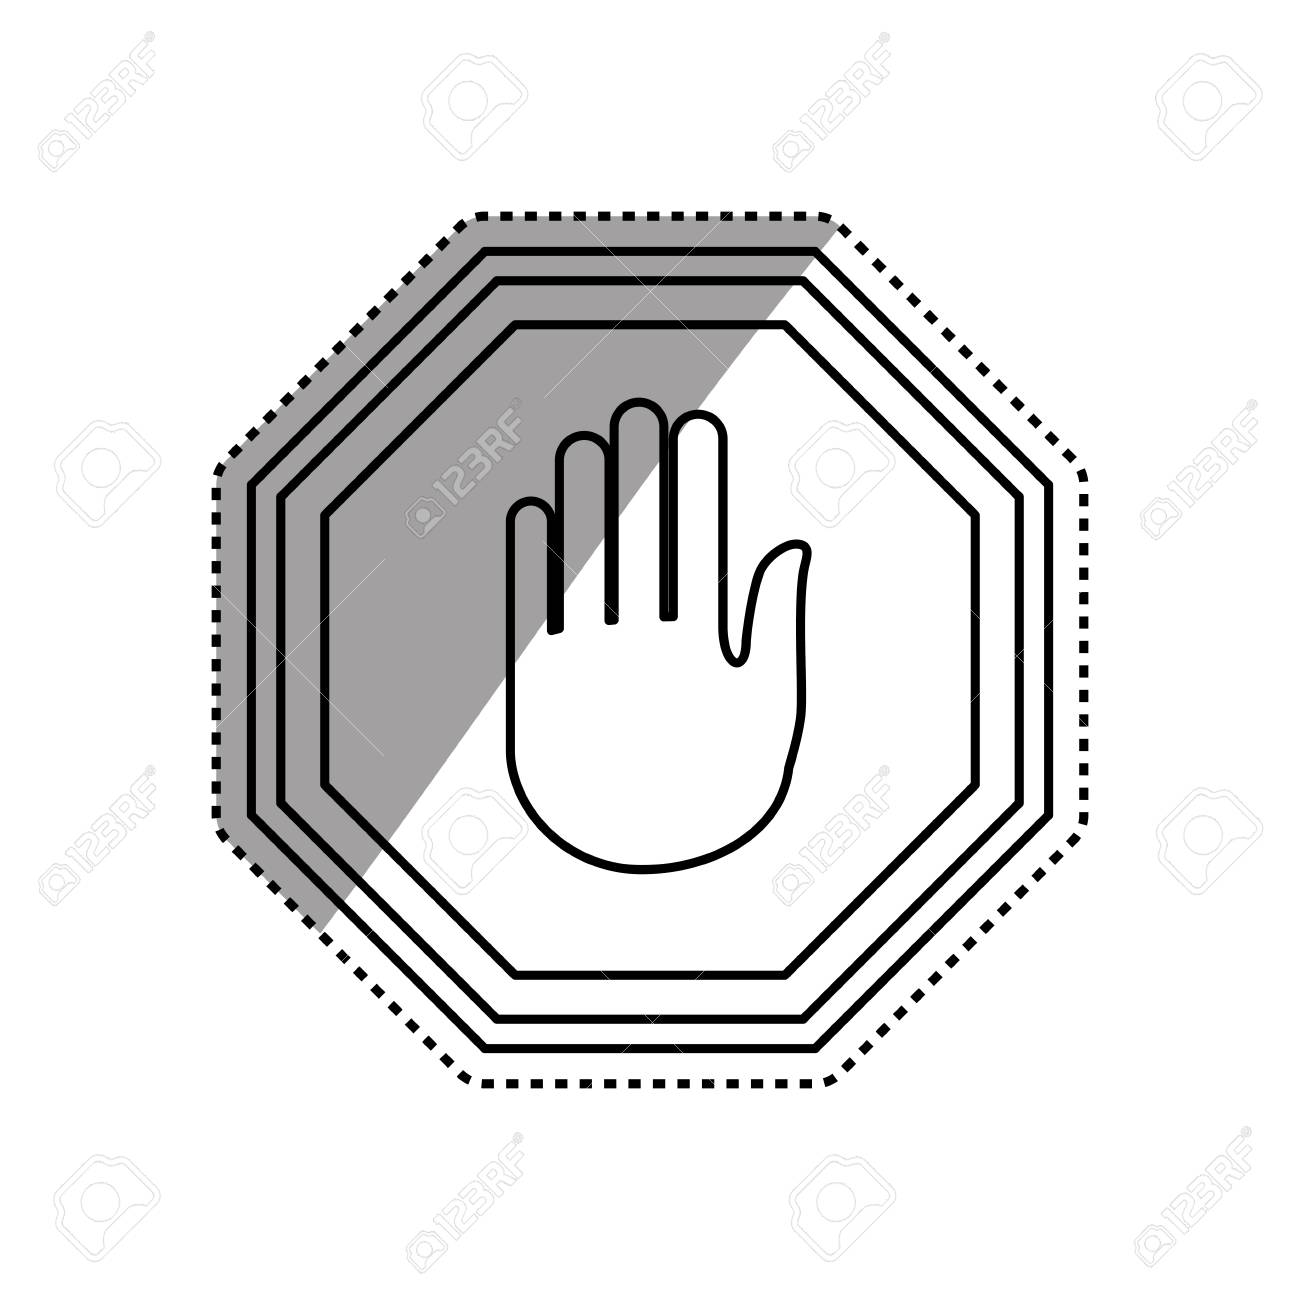 Stop Sign Hand Vector Icon Illustration Clipart Royalty Free